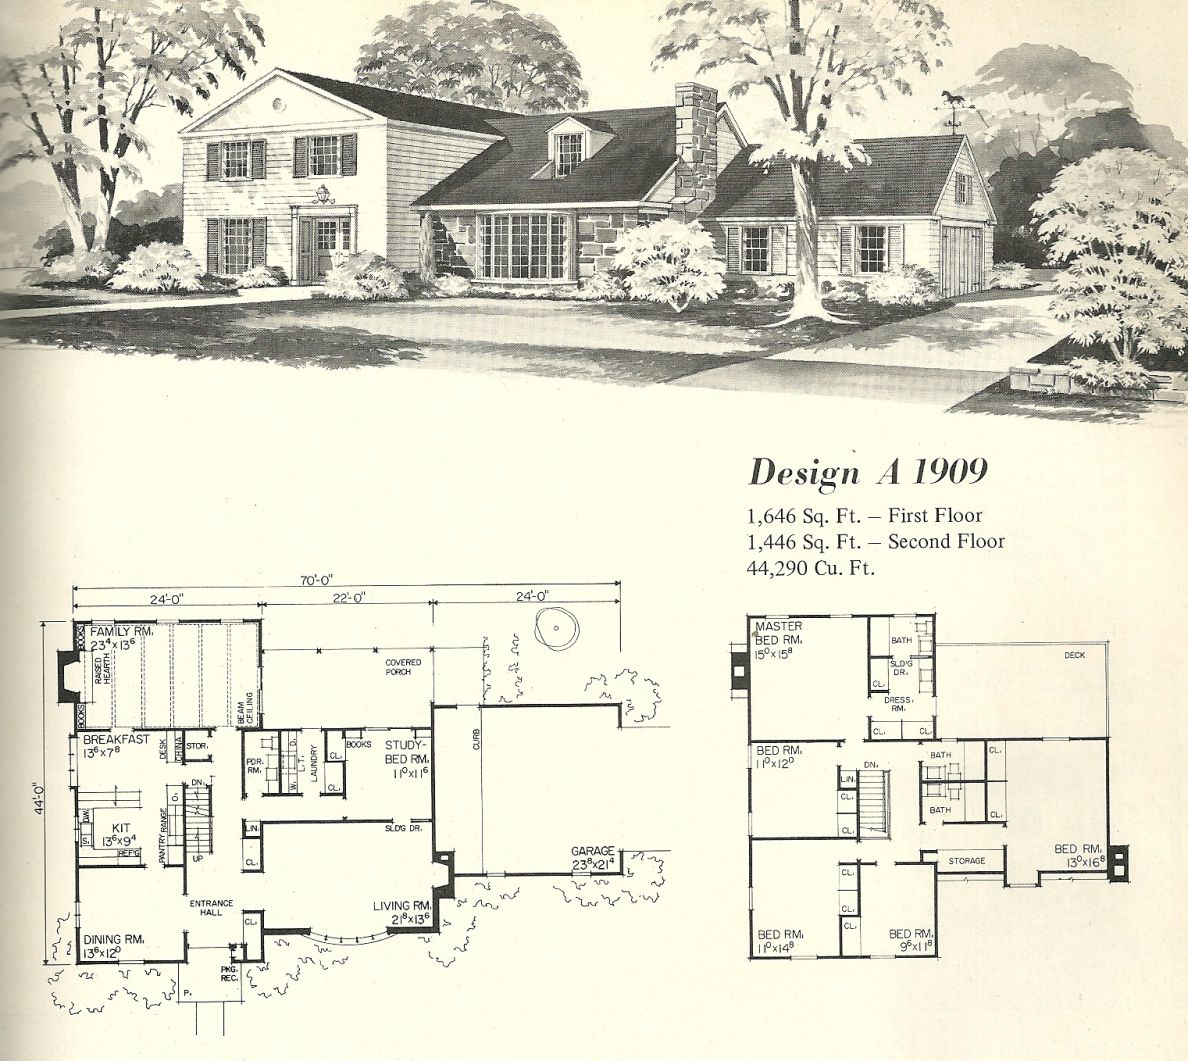 Vintage House Plans, Early Colonial | house plans | Vintage ... on best one story house plans, classical greek revival house plans, jeffersonian house plans, early colonization of america, early colonial home, sears small house plans, early american home plans, early colonial architecture, early american houses, moorish revival house plans, colonial early american floor plans, early colonial furniture, early colonial art, early colonial flooring, french country house plans, garrison style house plans, early colonial fishing, early colonial bedroom, vintage sears house plans,